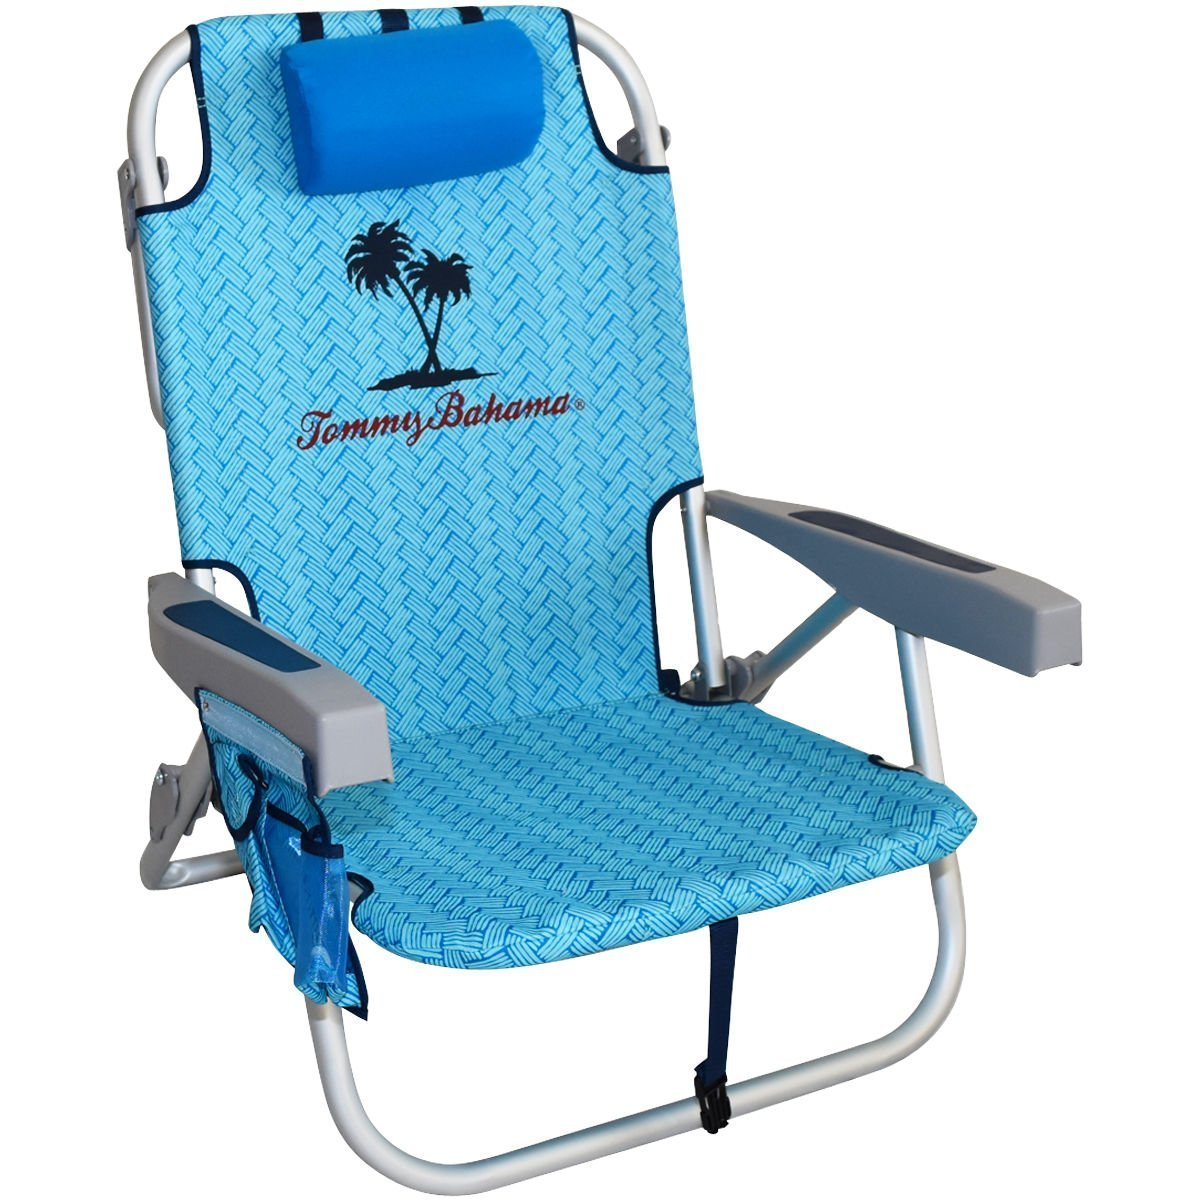 Tommy Bahama 2016 Backpack Cooler Chair with Storage Pouch and Towel Bar (Blue Weave) [並行輸入品] B078BQQDX7